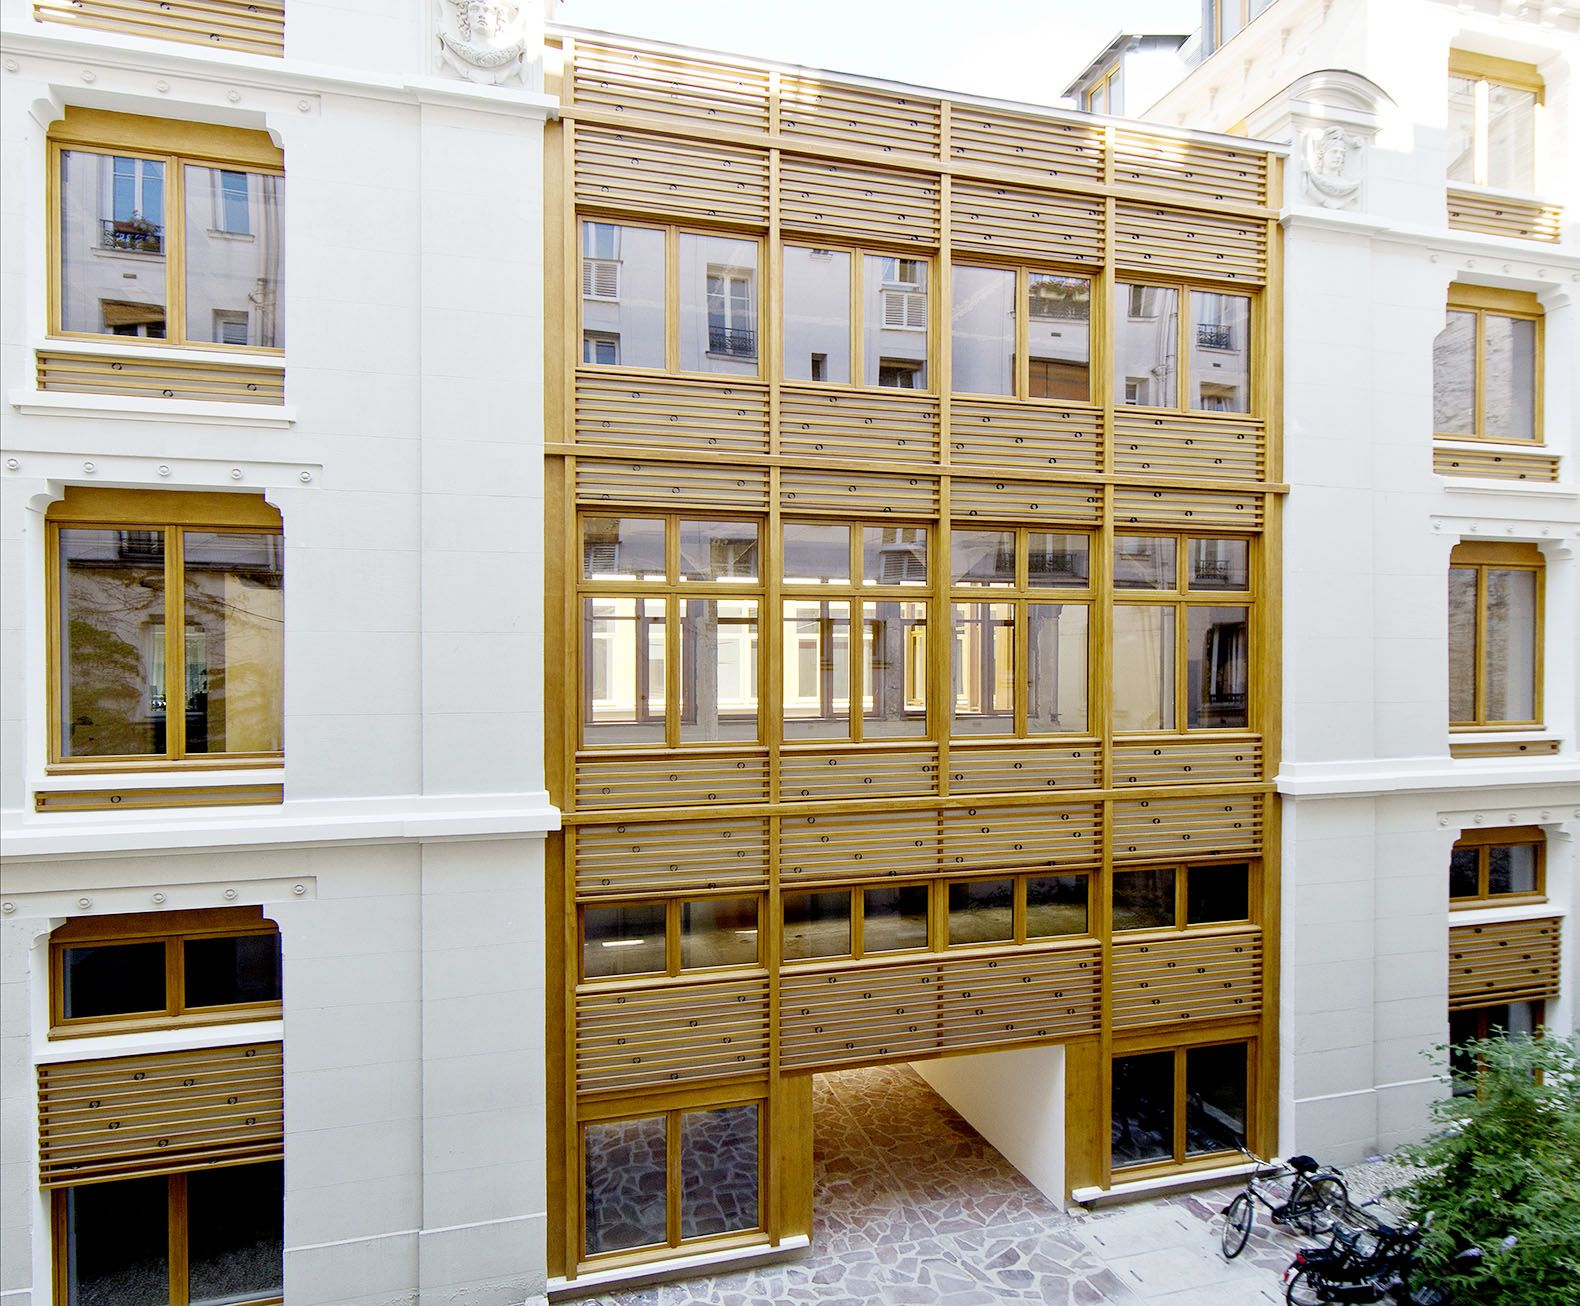 wooden office buildings. Parc Architectes Renovate A 19th-century Office Building In Paris With Beautiful Wooden Facade Buildings